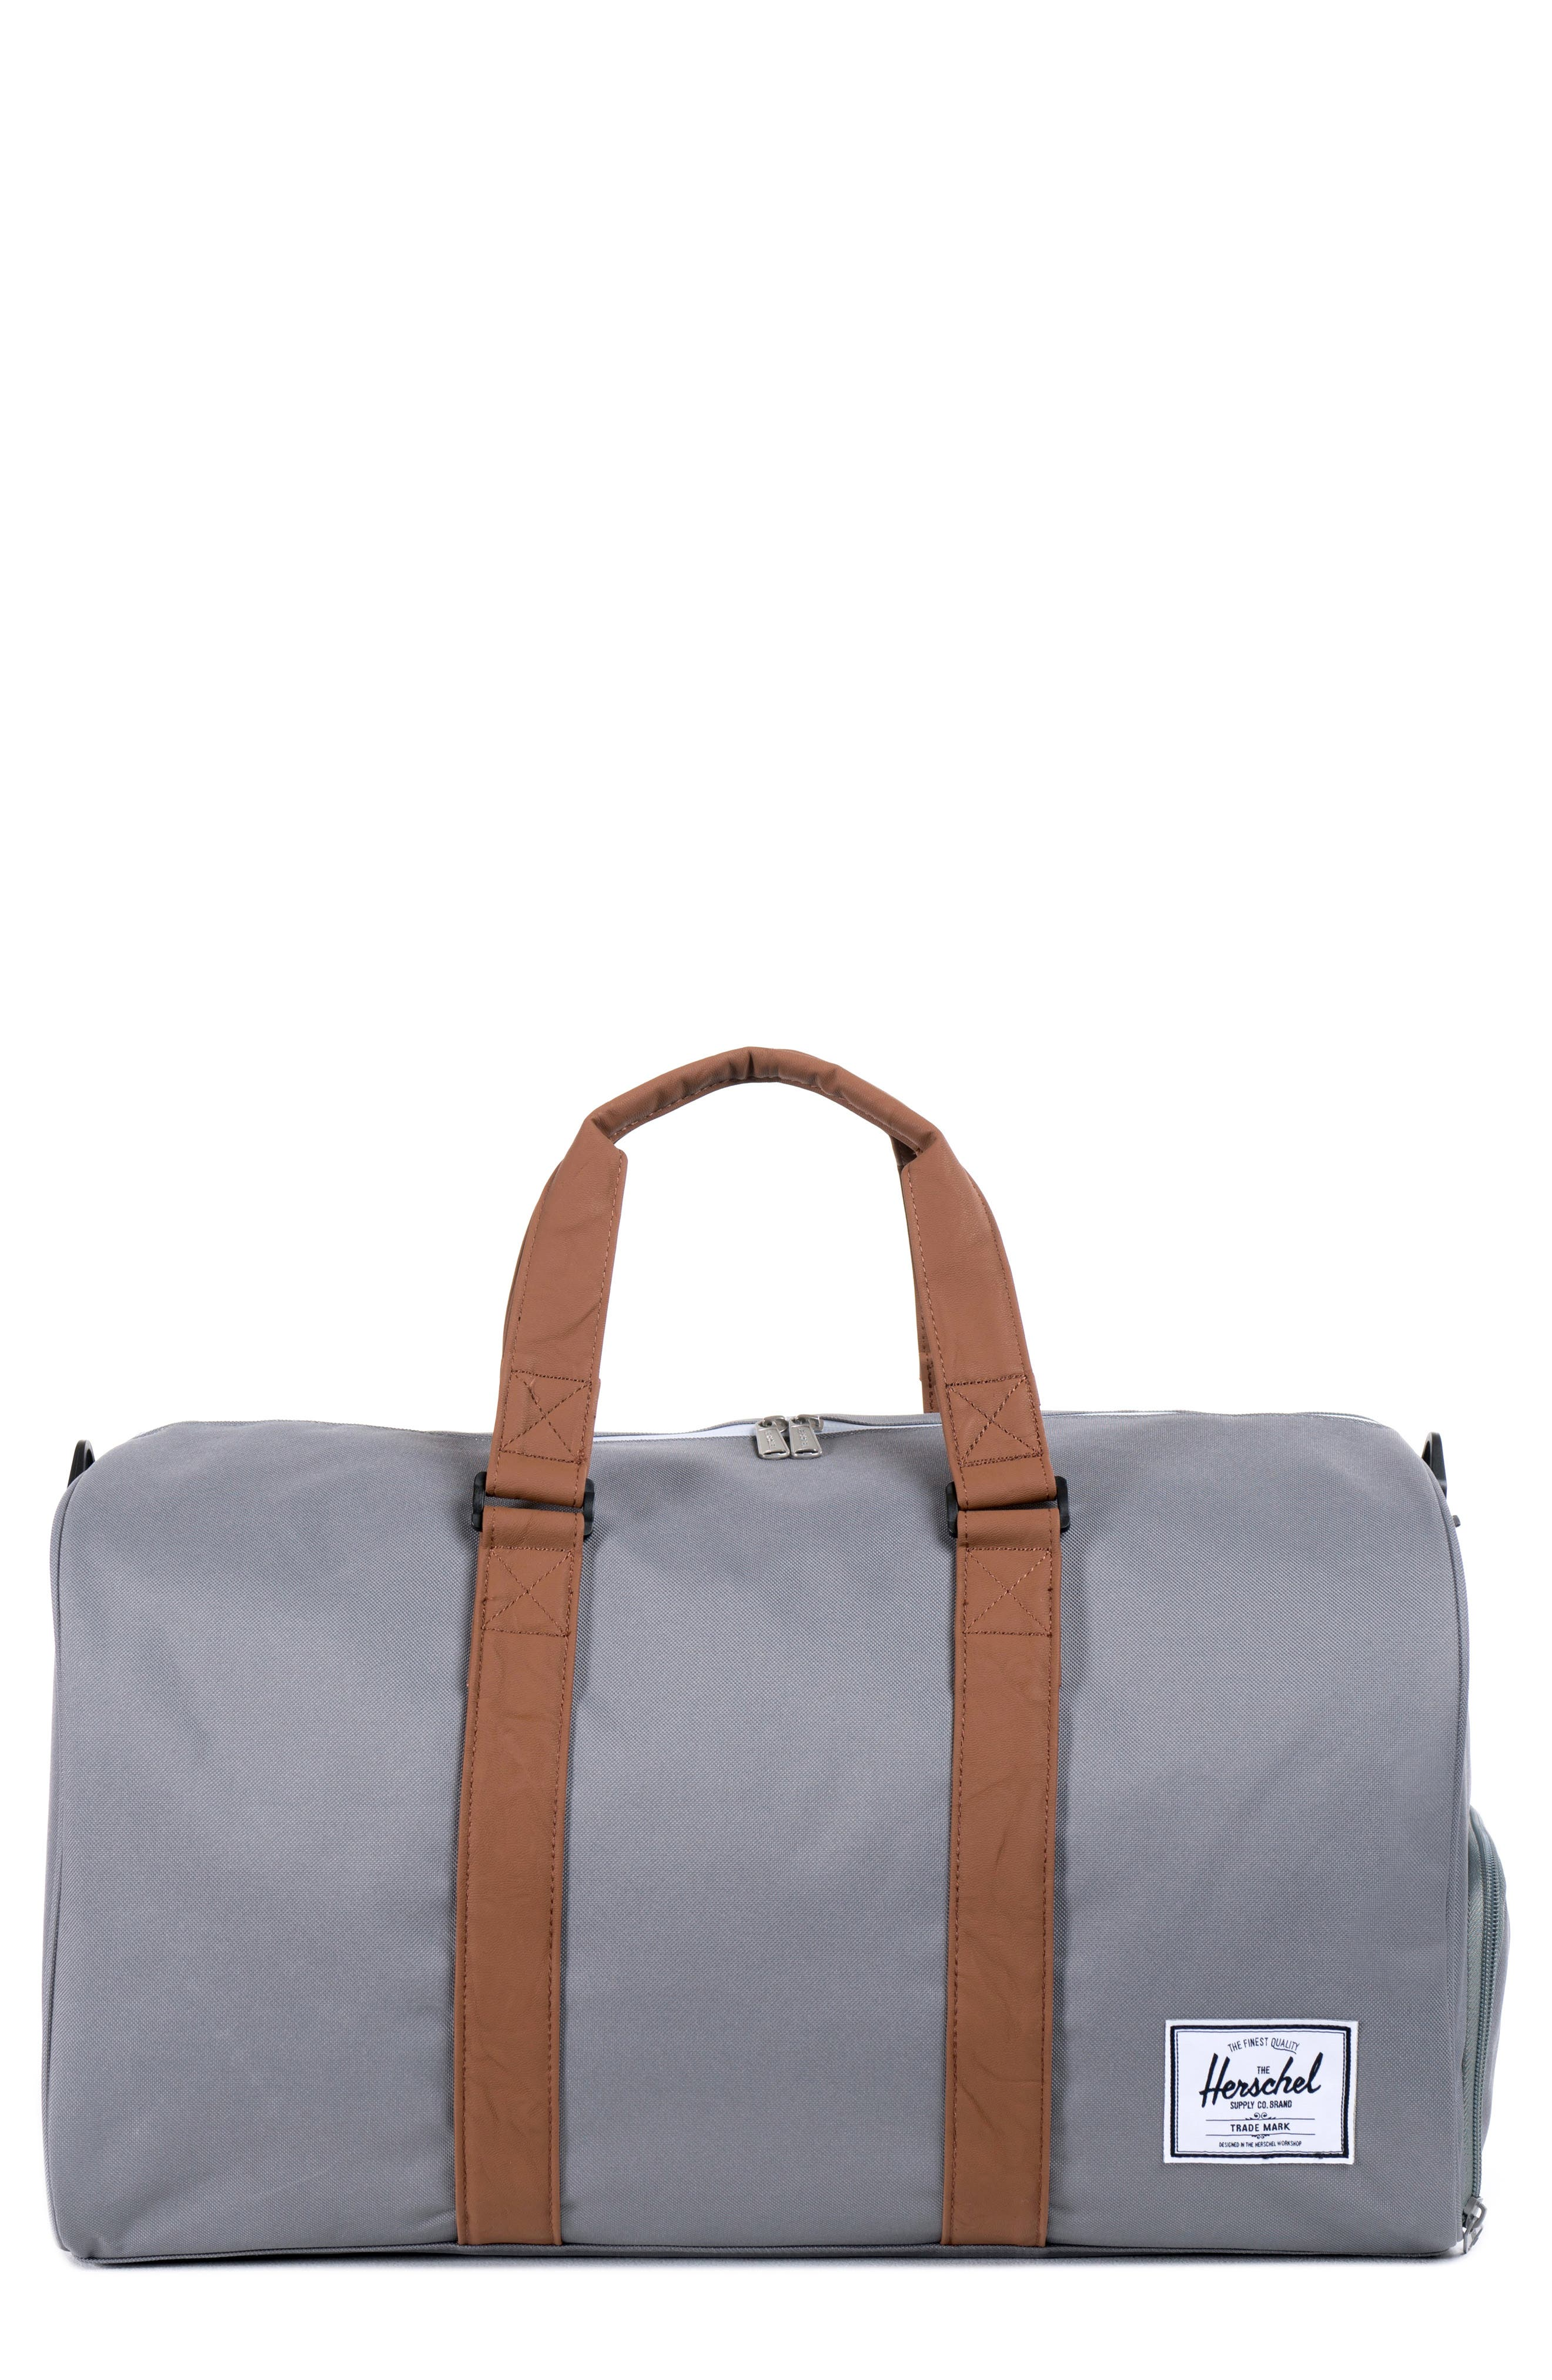 HERSCHEL SUPPLY CO., Novel Canvas Duffle Bag, Main thumbnail 1, color, GREY/ TAN